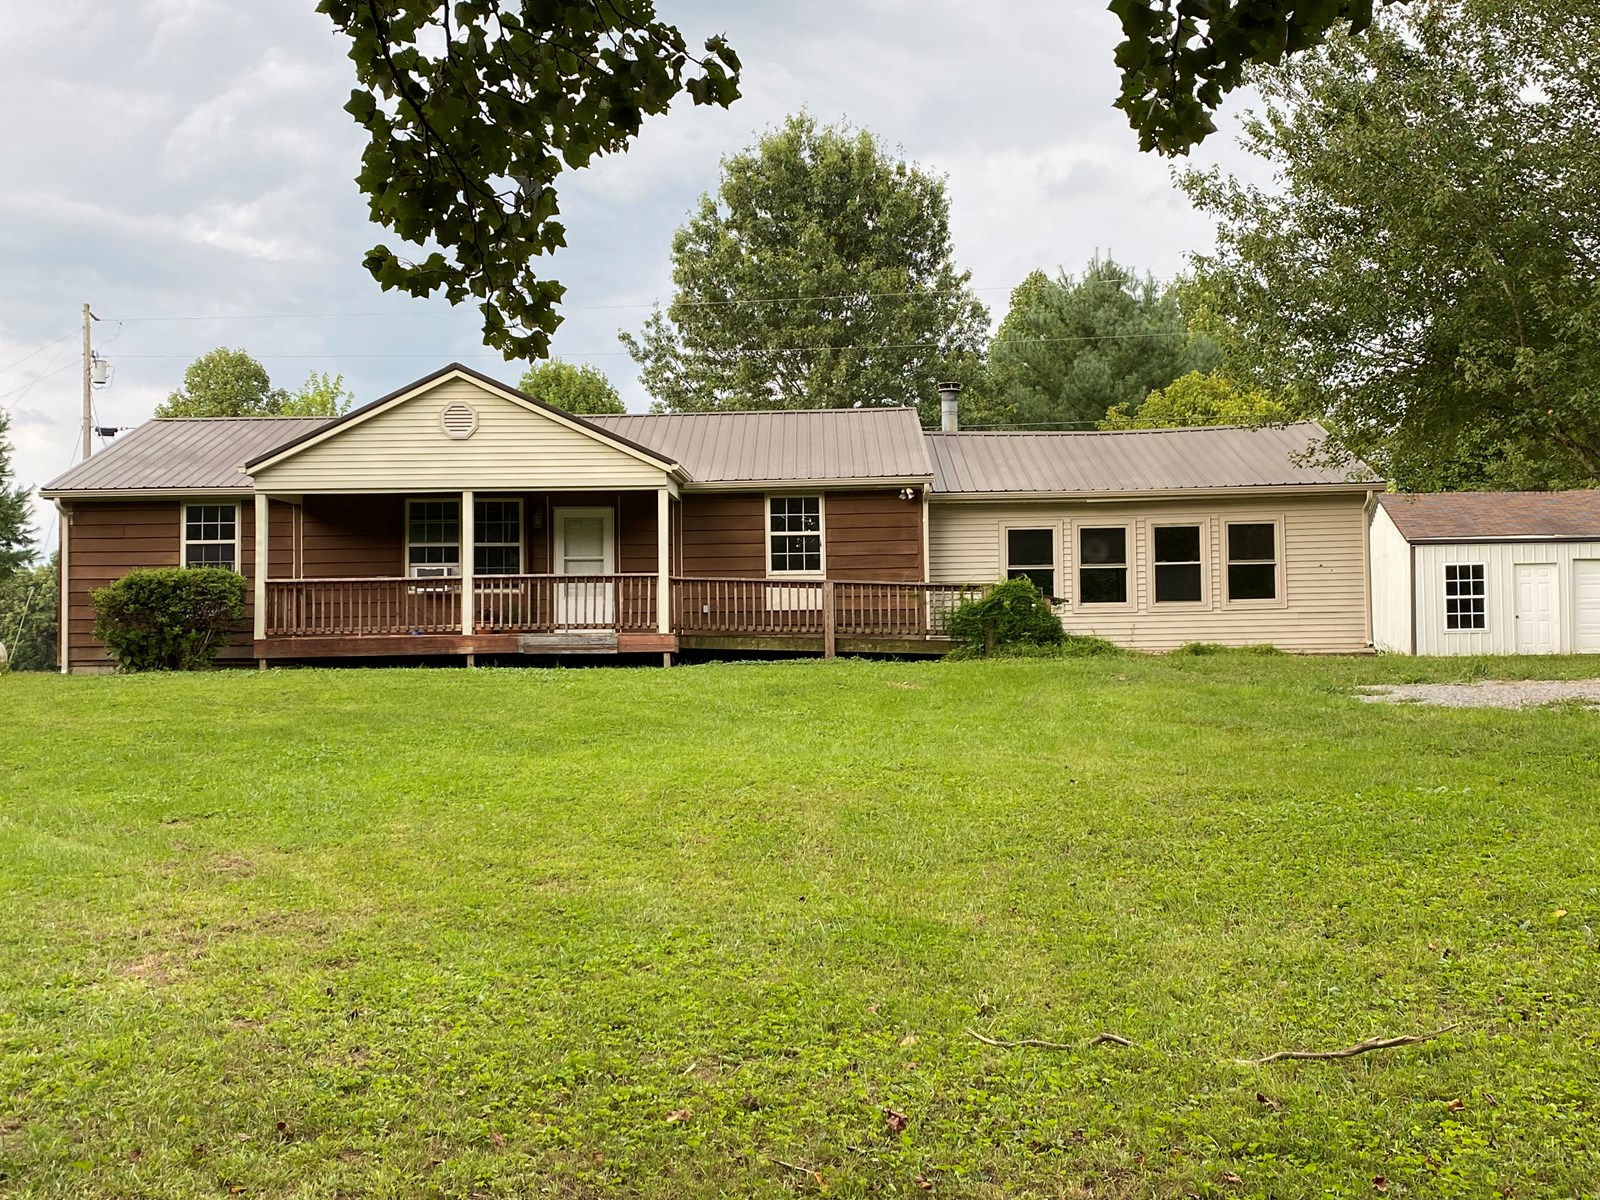 Country Home 3 Bedroom 2 Bath Ranch Style on 18 +/-